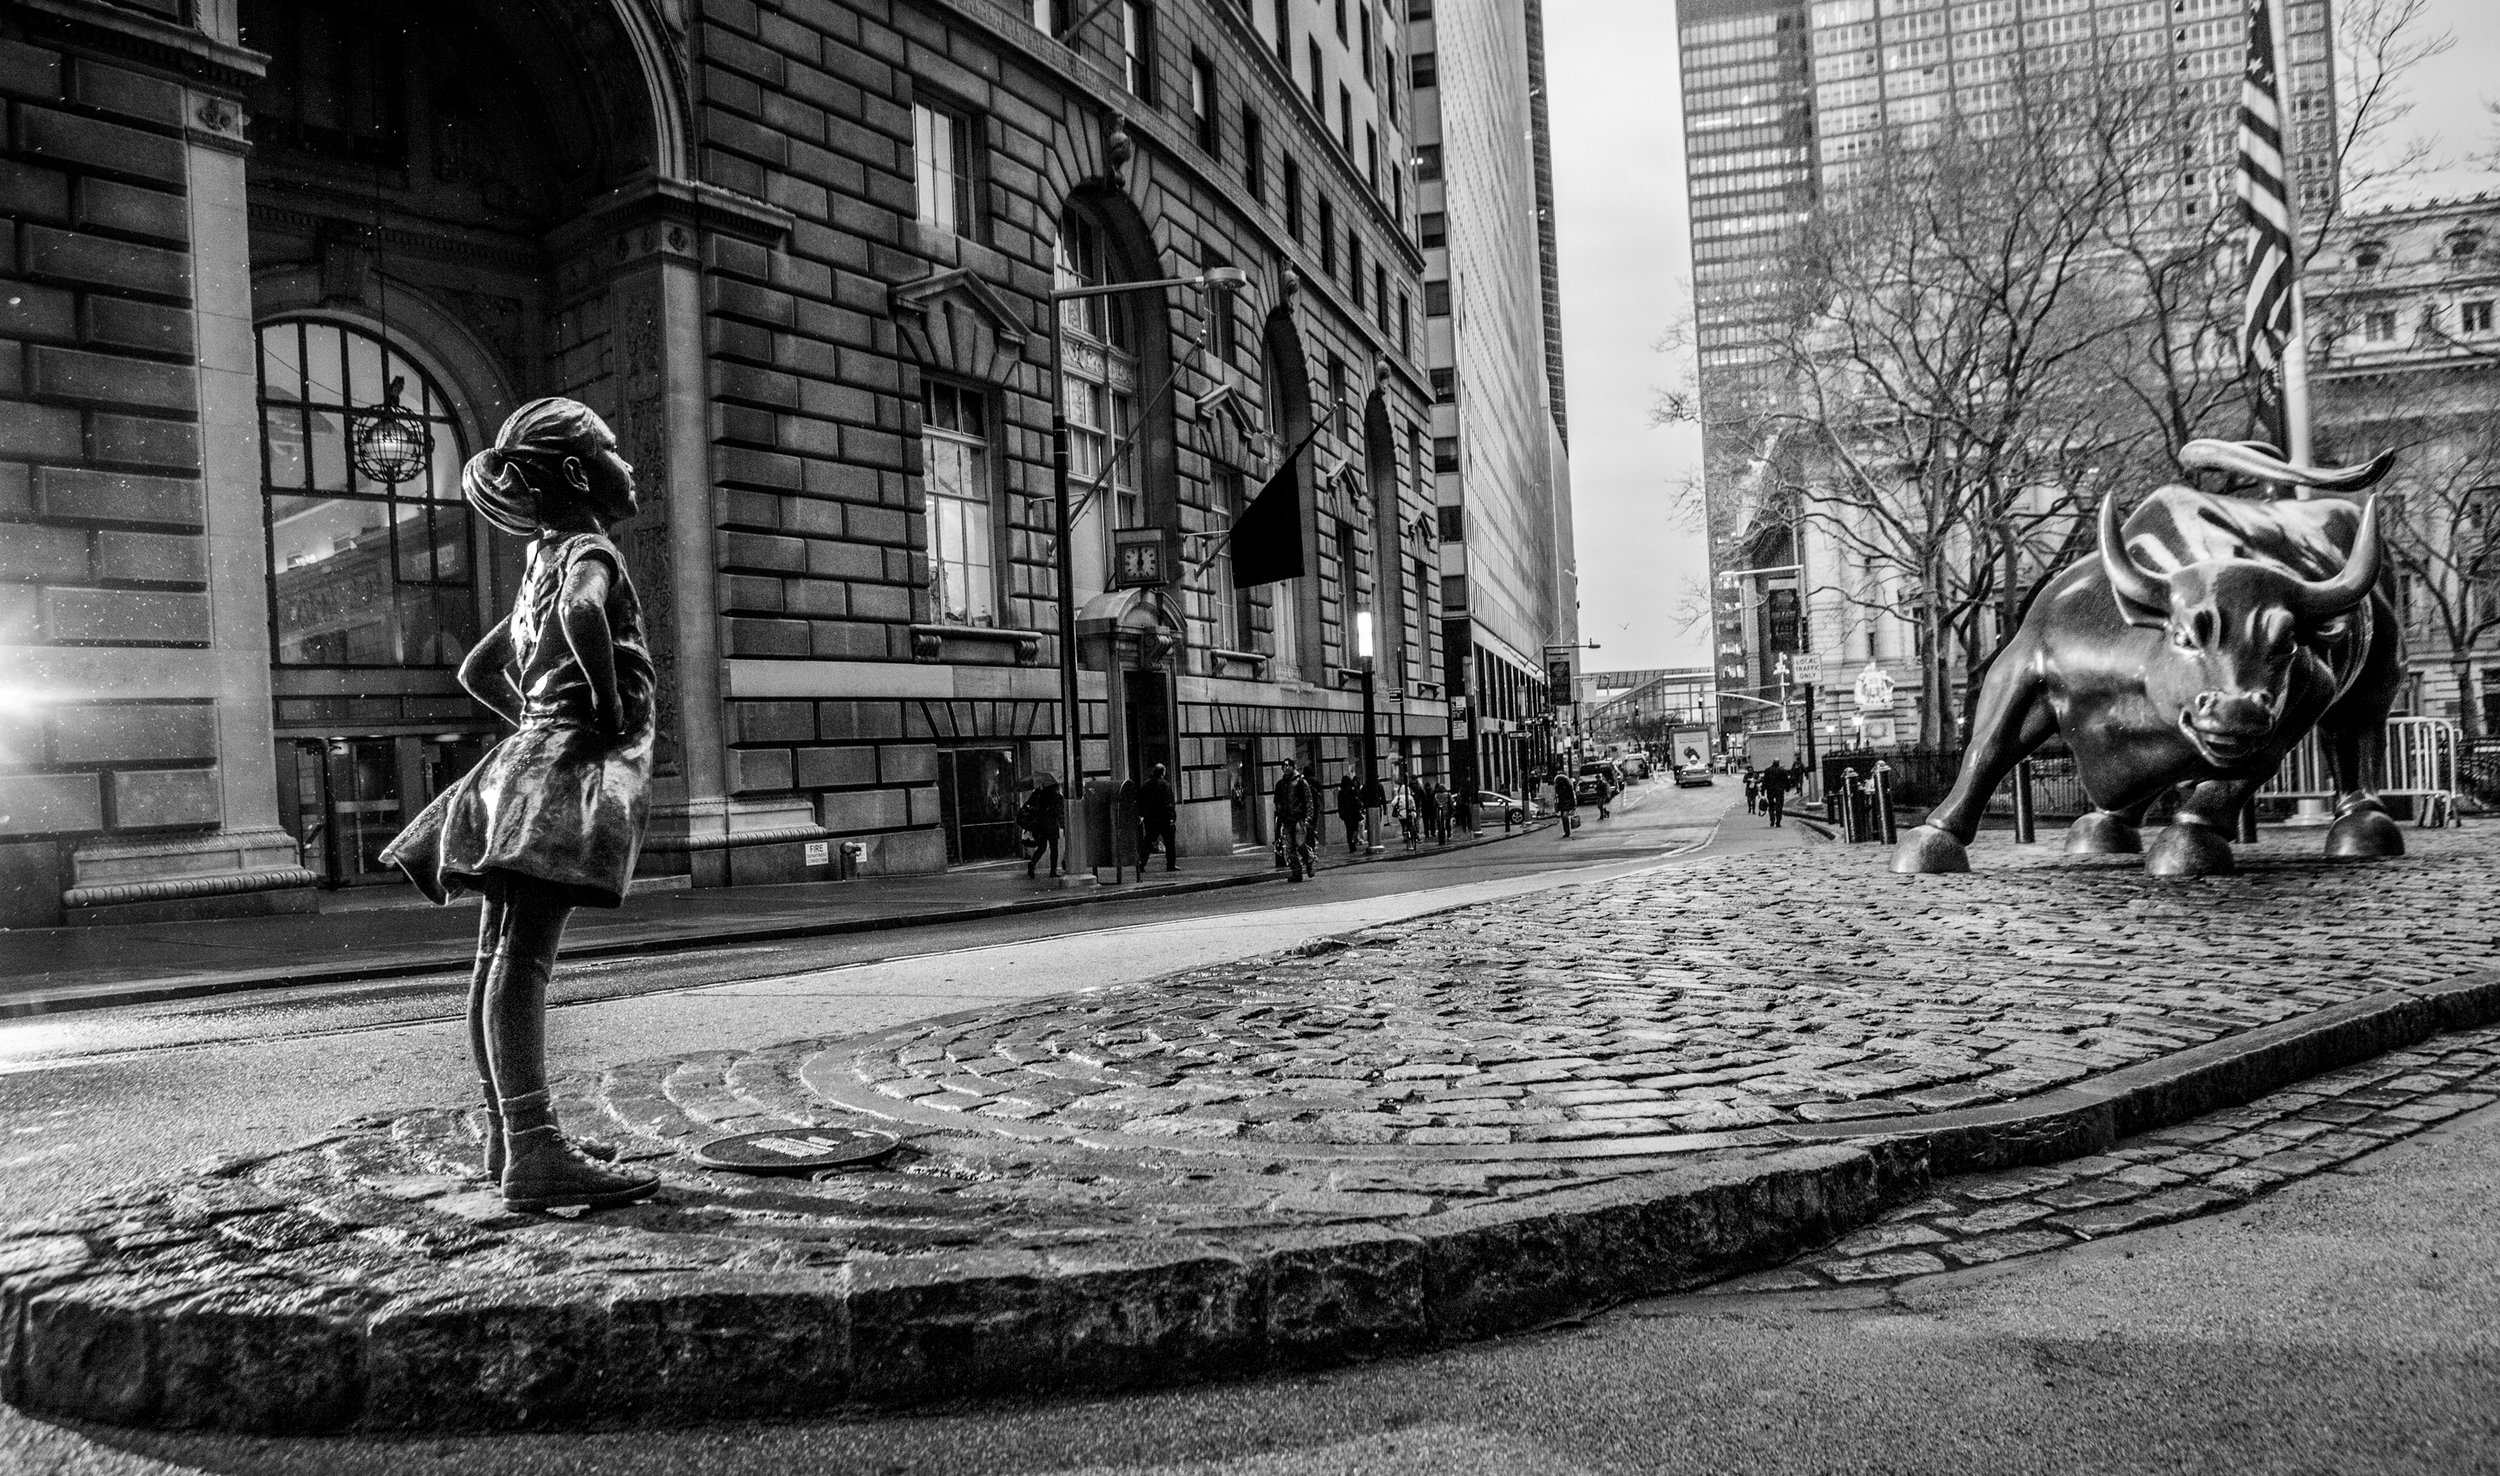 """""""In honor of International Women's Day, we are very proud to introduce """"The Fearless Girl""""- a statue of a daring young girl, standing strong in front of the bull on Wall Street. The statue supports the fact that companies with women in leadership perform better. The Fearless Girl is a symbol of the power of female leadership both today and tomorrow. This initiative has been a heroic effort in partnership between State Street and McCann. #FearlessGirl"""" - McCann New York"""